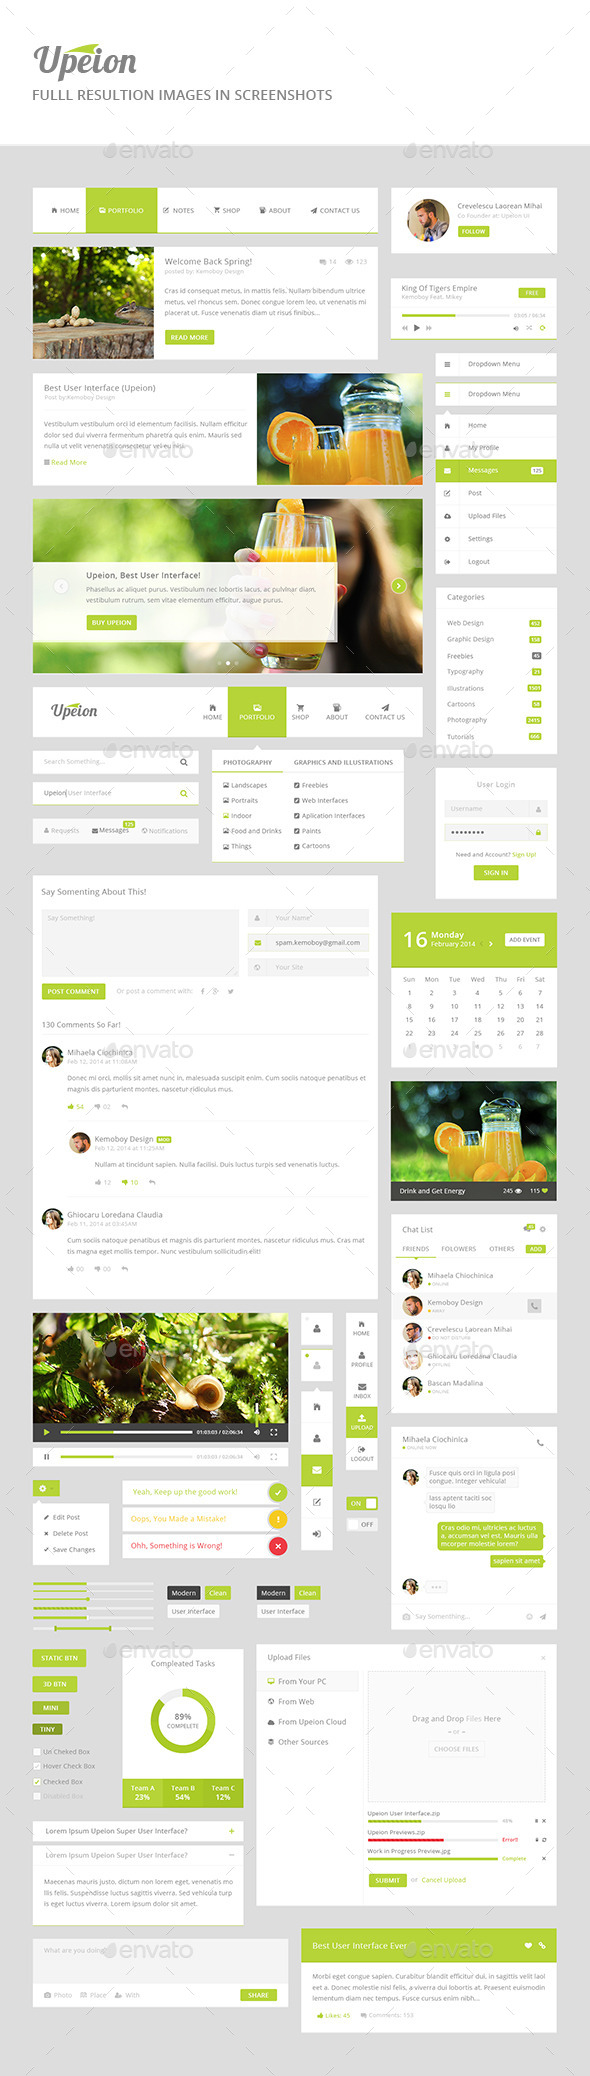 GraphicRiver Upeion UI Modern and Fresh UI 10580656